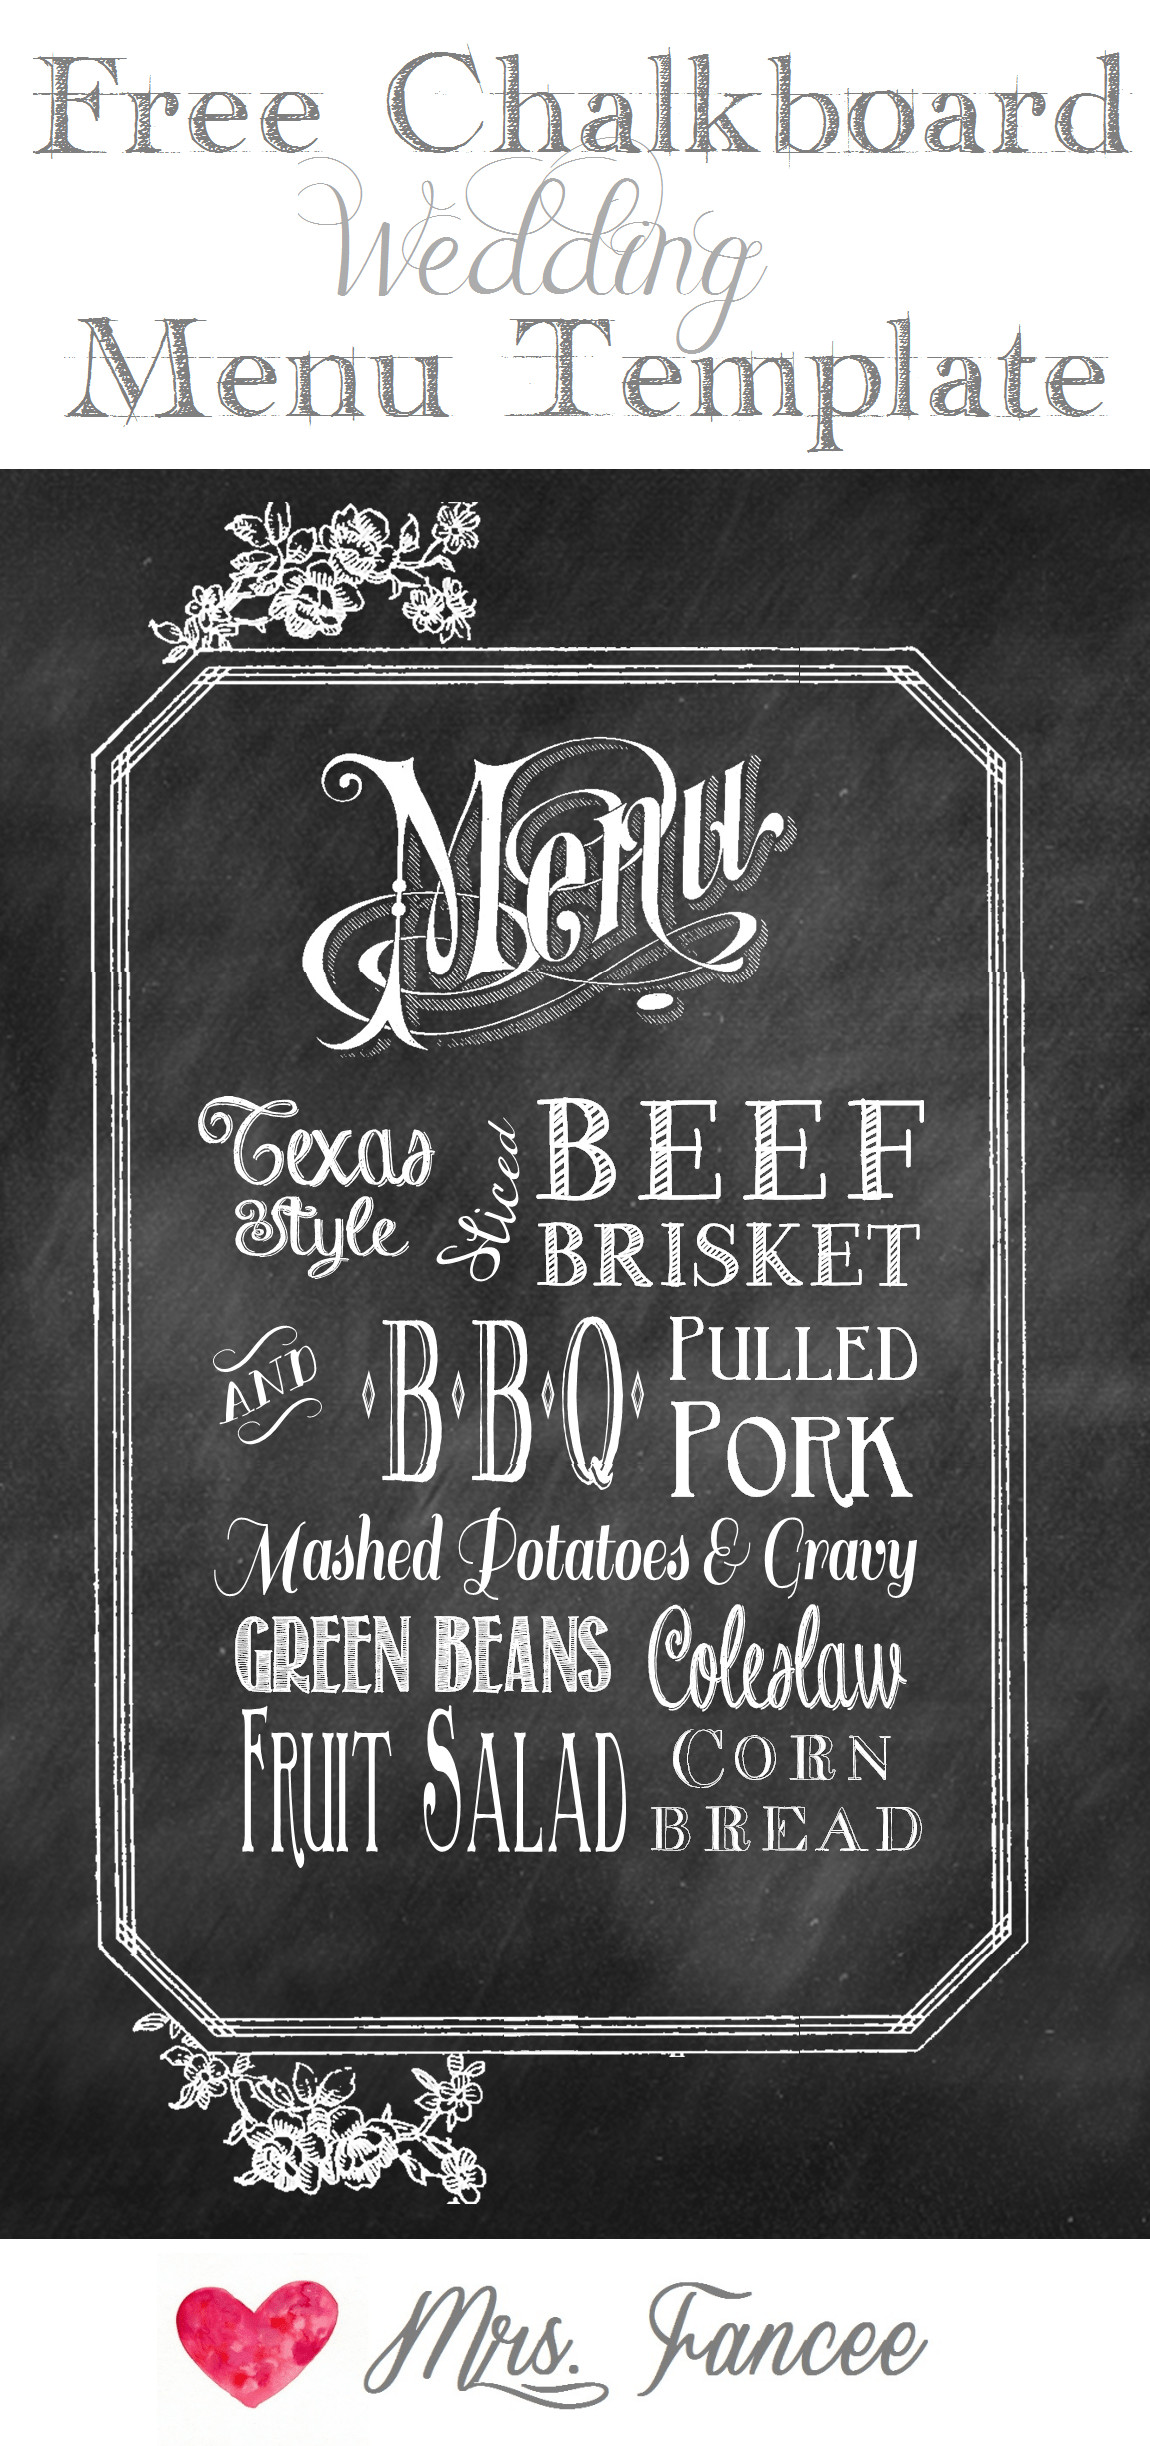 Chalkboard Template Microsoft Word Chalkboard Wedding Menu Free Template Mrs Fancee